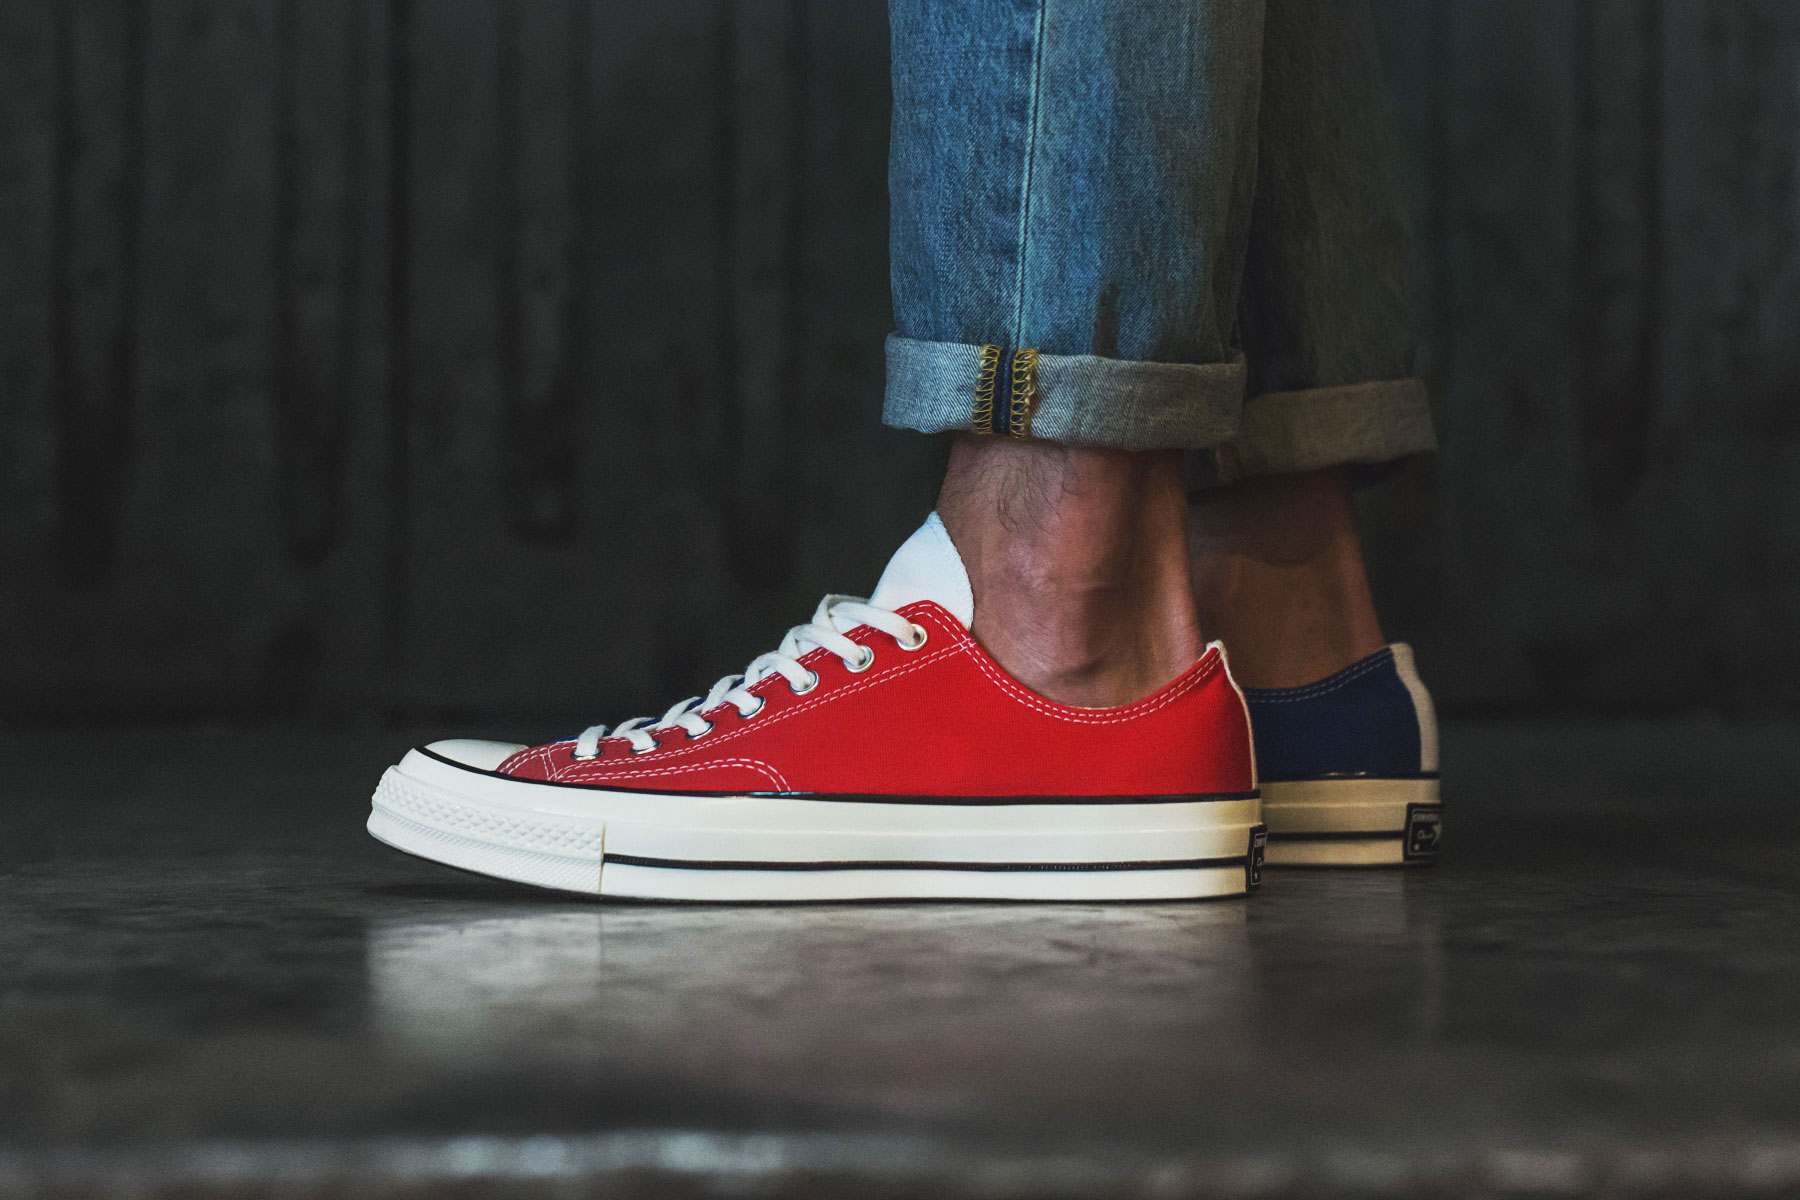 converse chuck taylor all star 2014